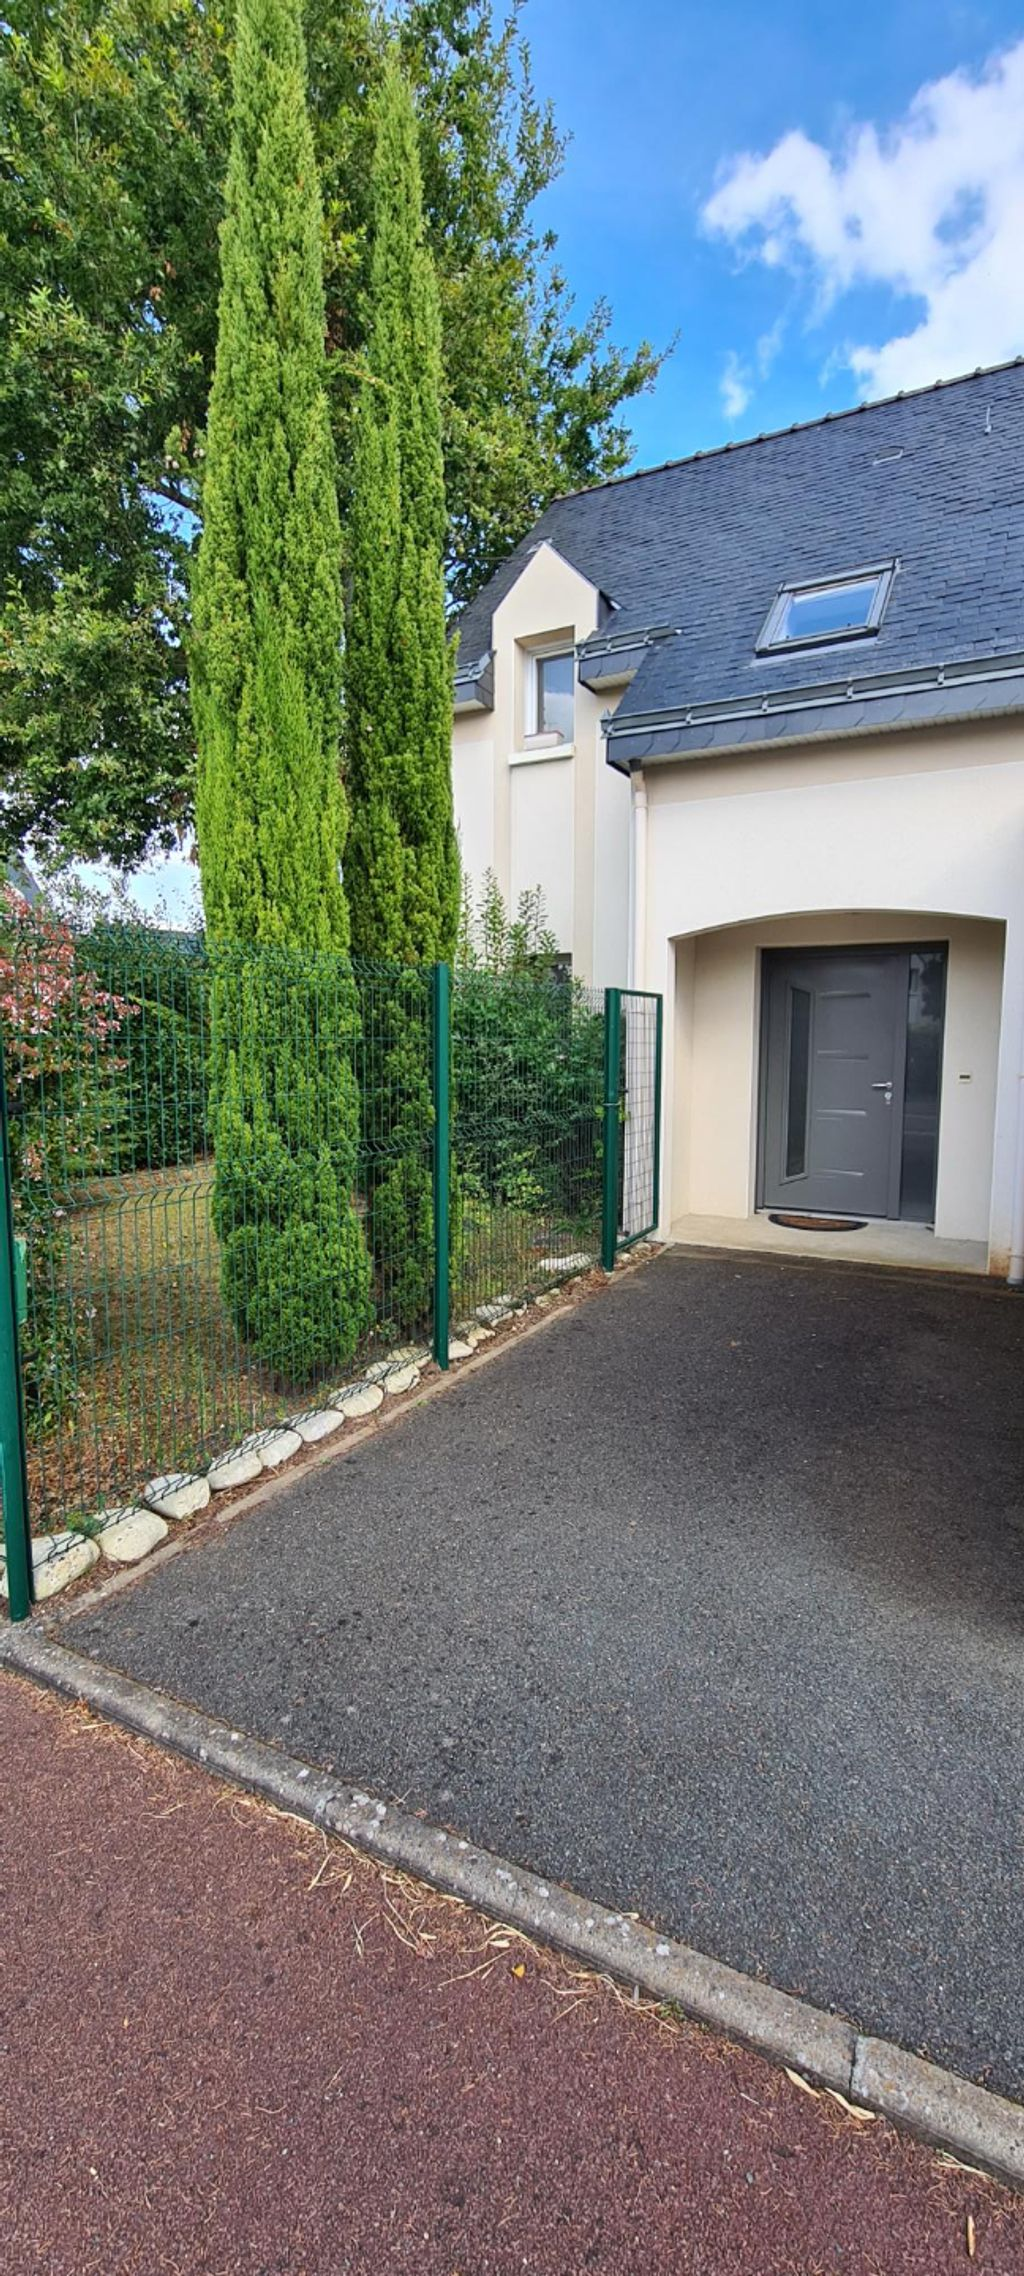 Achat maison 3chambres 90m² - Angers